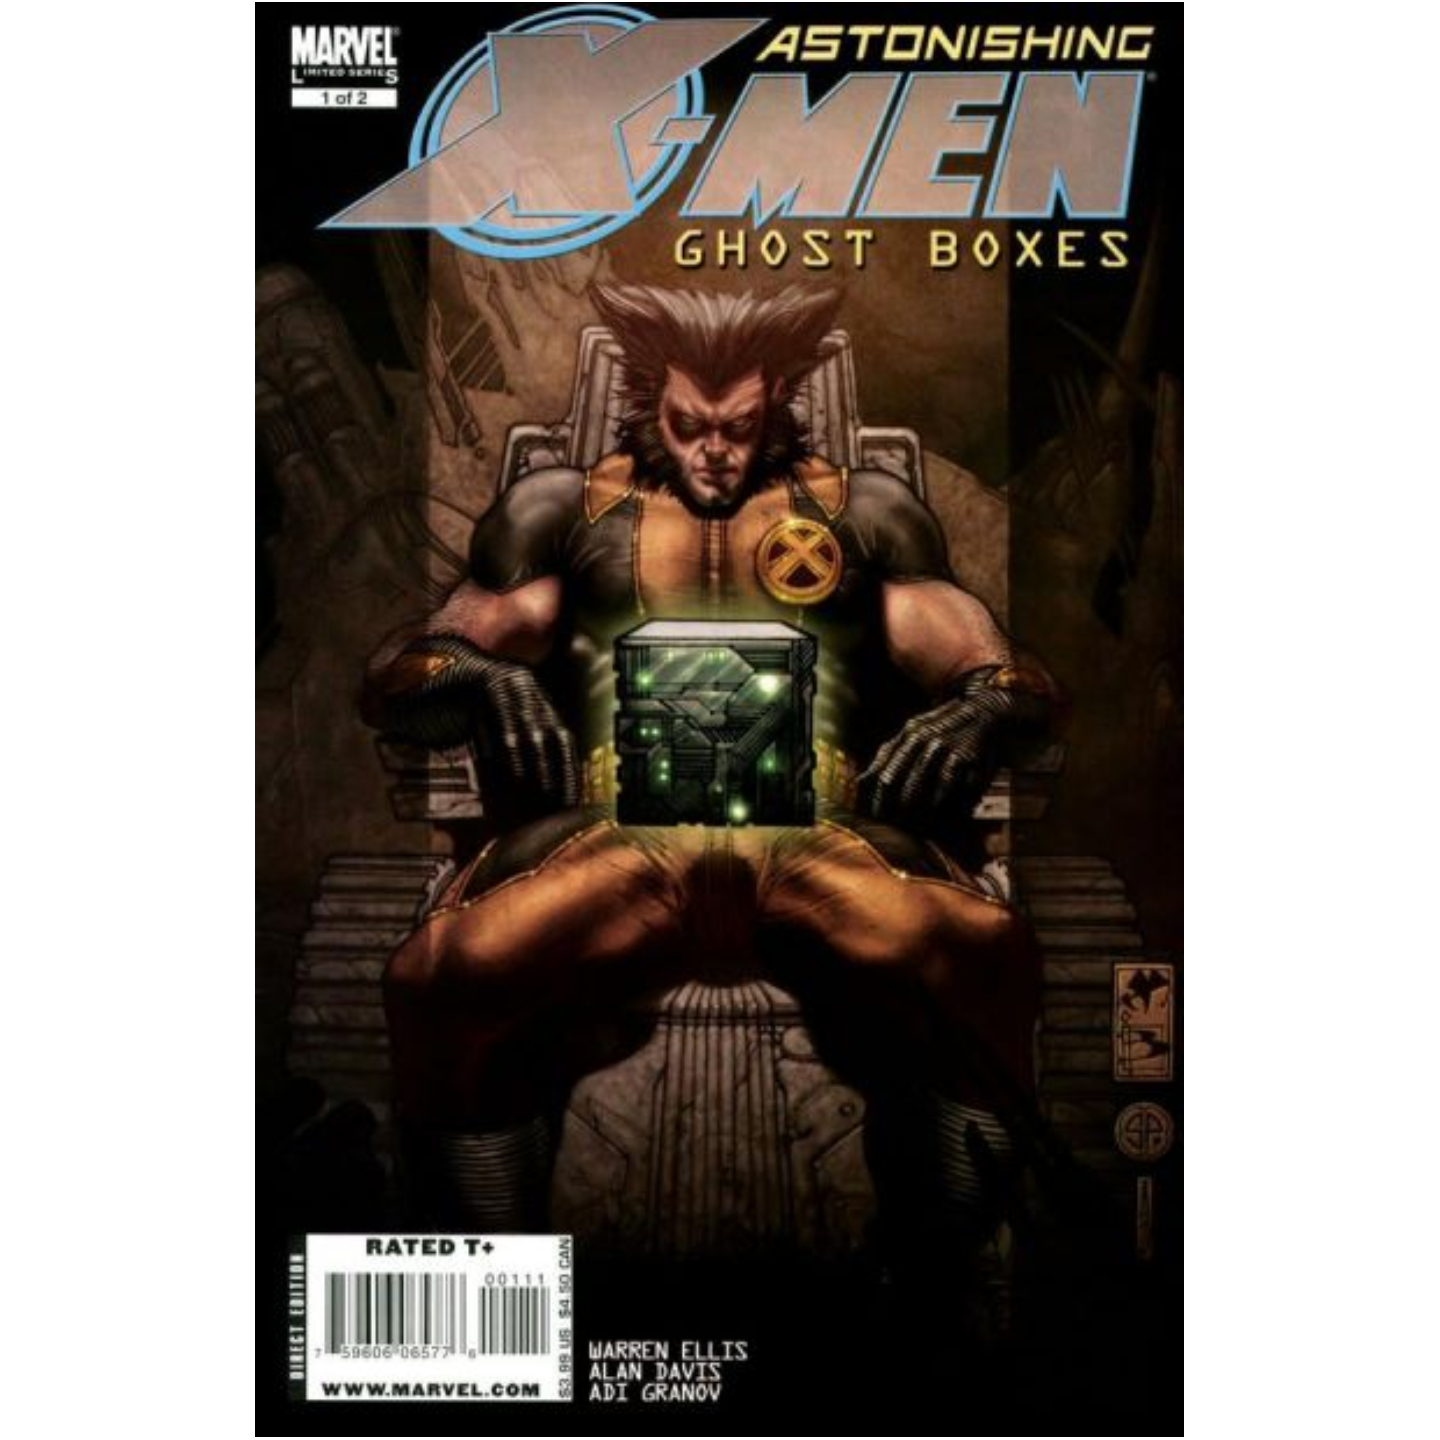 ASTONISHING X-MEN: GHOST BOXES #1 - #2 (COMPLETE MINI SERIES)